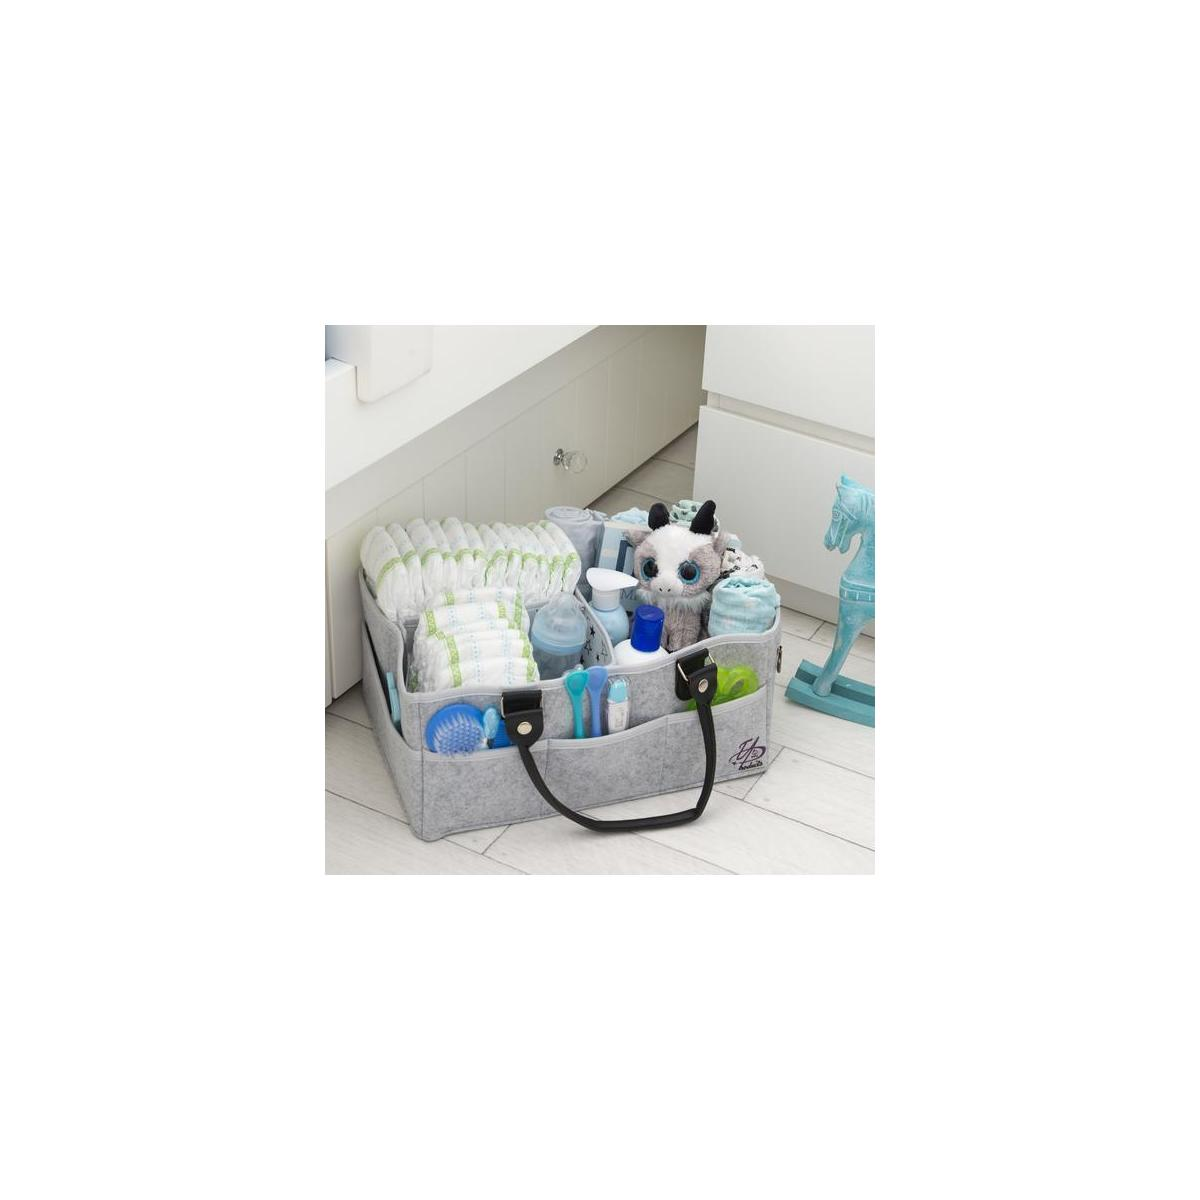 Baby Diaper Caddy Organizer Bag for Changing Table/Storage/Portable Nursery Basket | X-Large (16x11x7 inches)